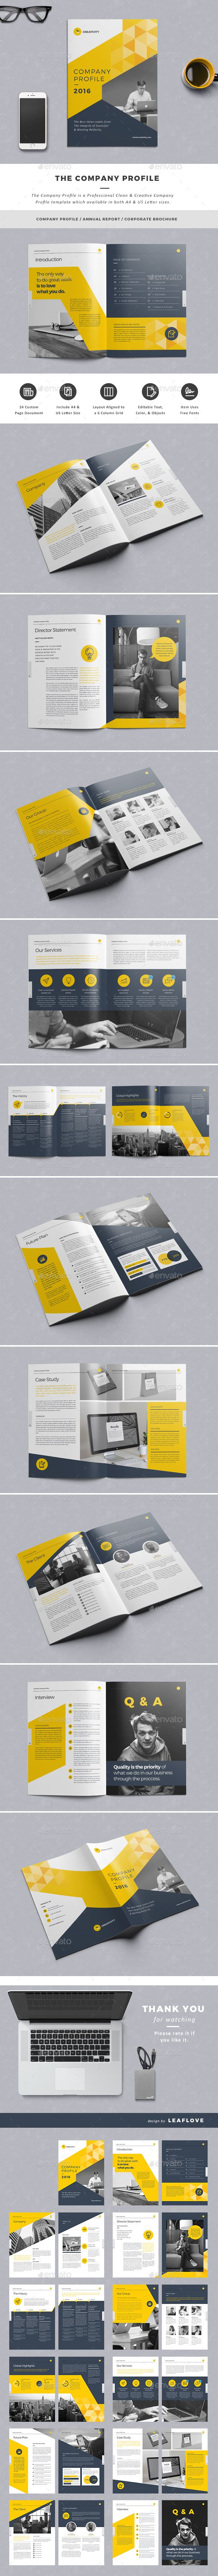 The Company Profile Pinterest Company Profile Brochure Template